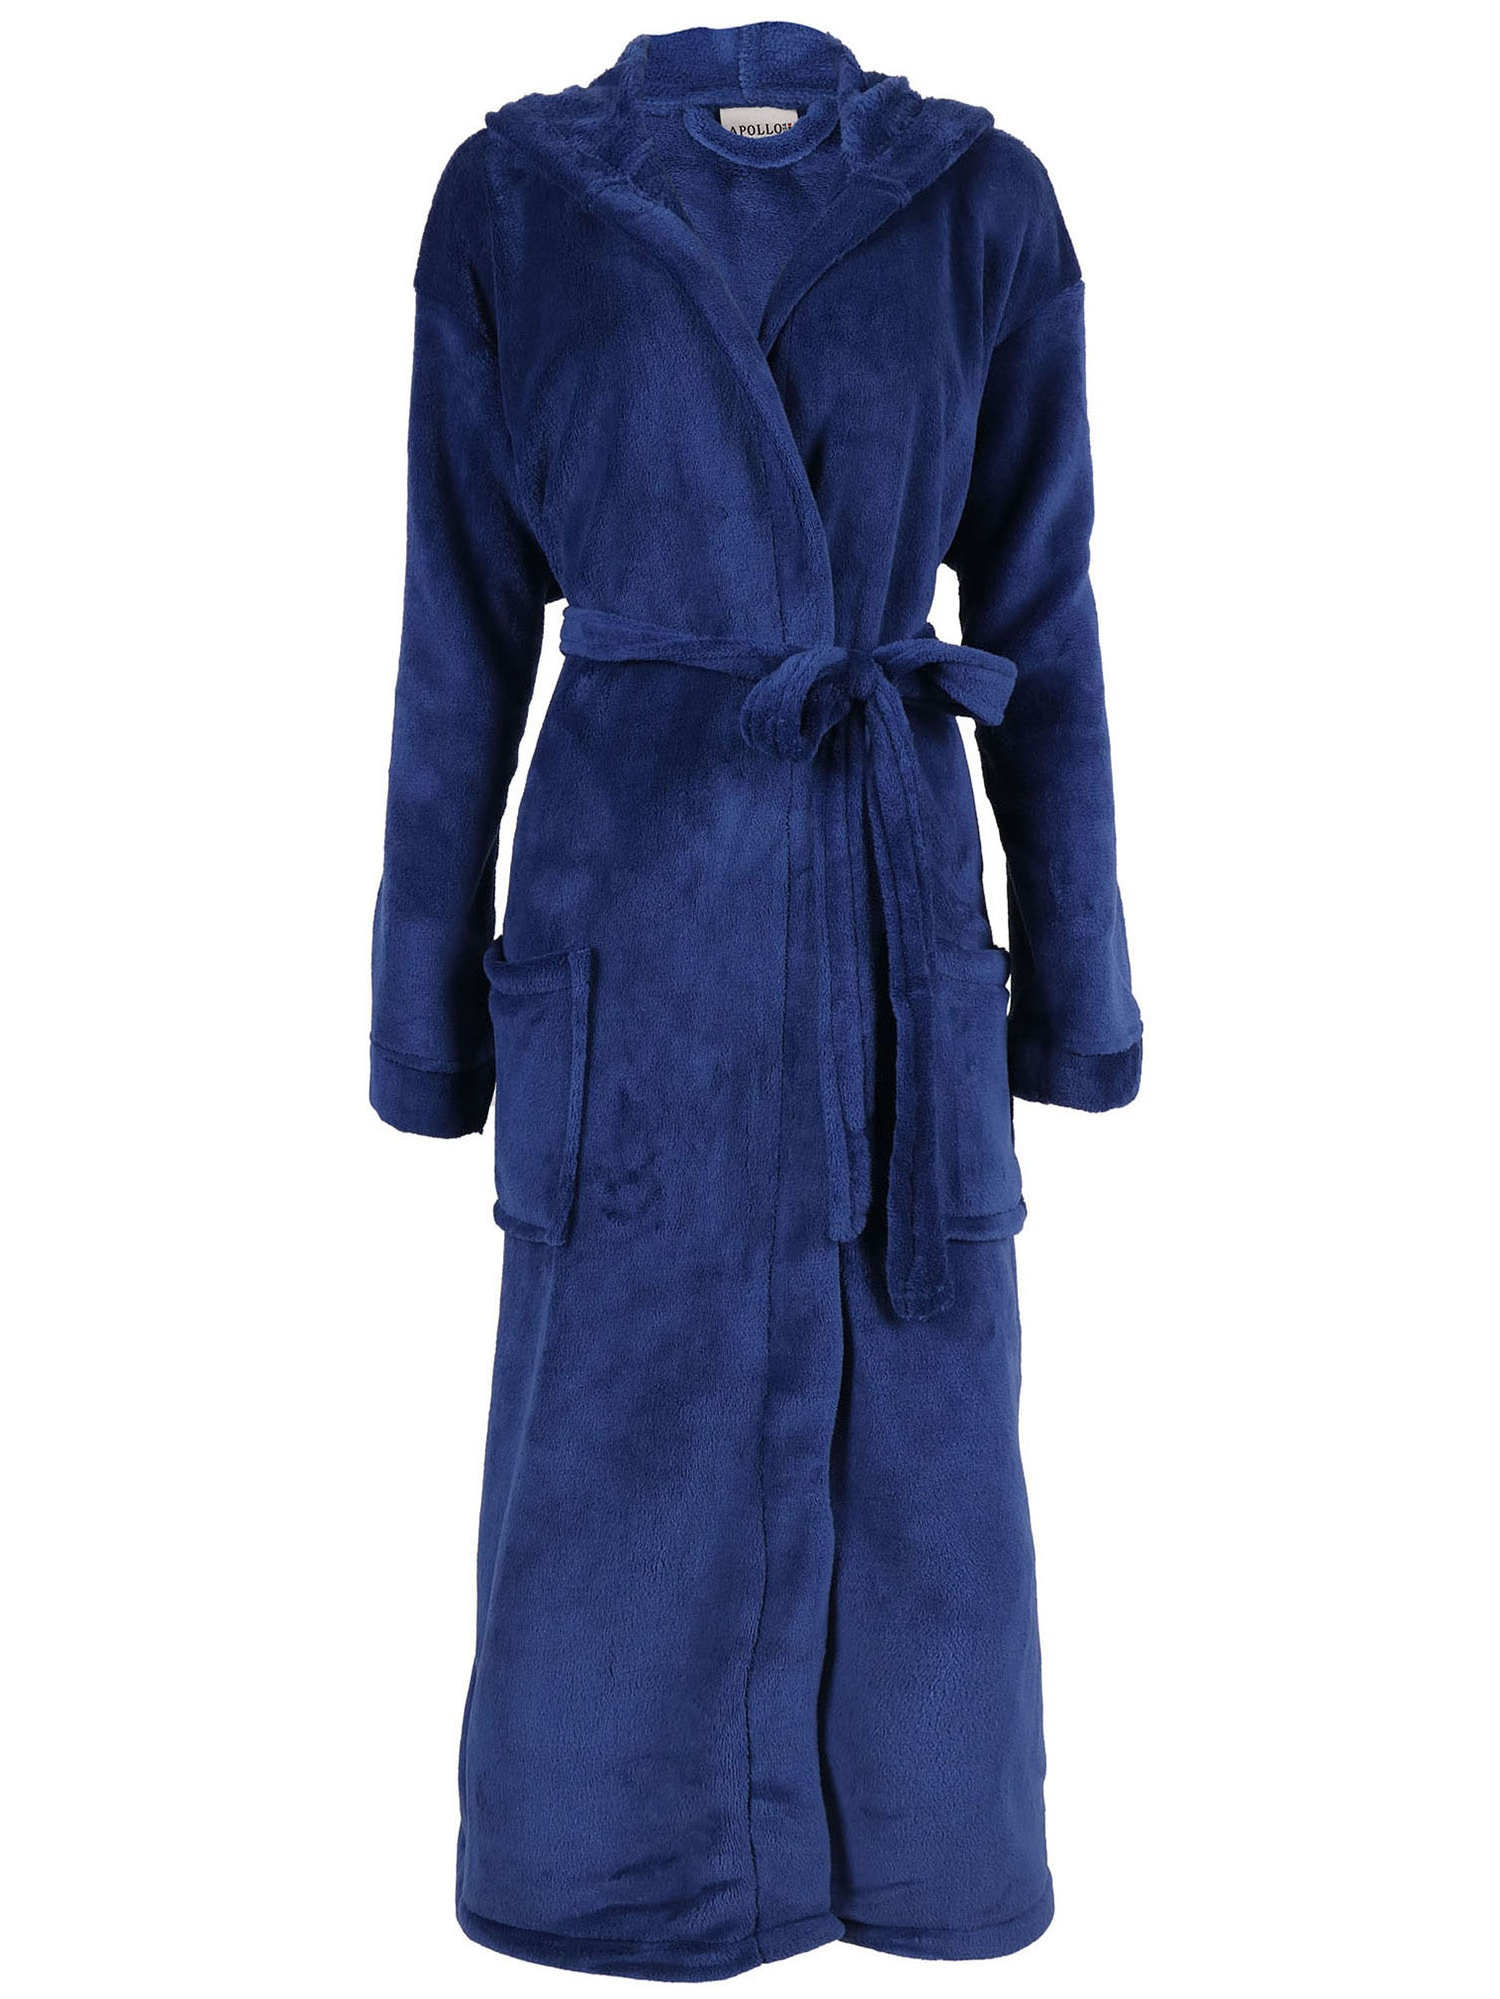 Wanted Mens Bathrobe Hooded Robe Plush Micro Fleece with Front Pockets